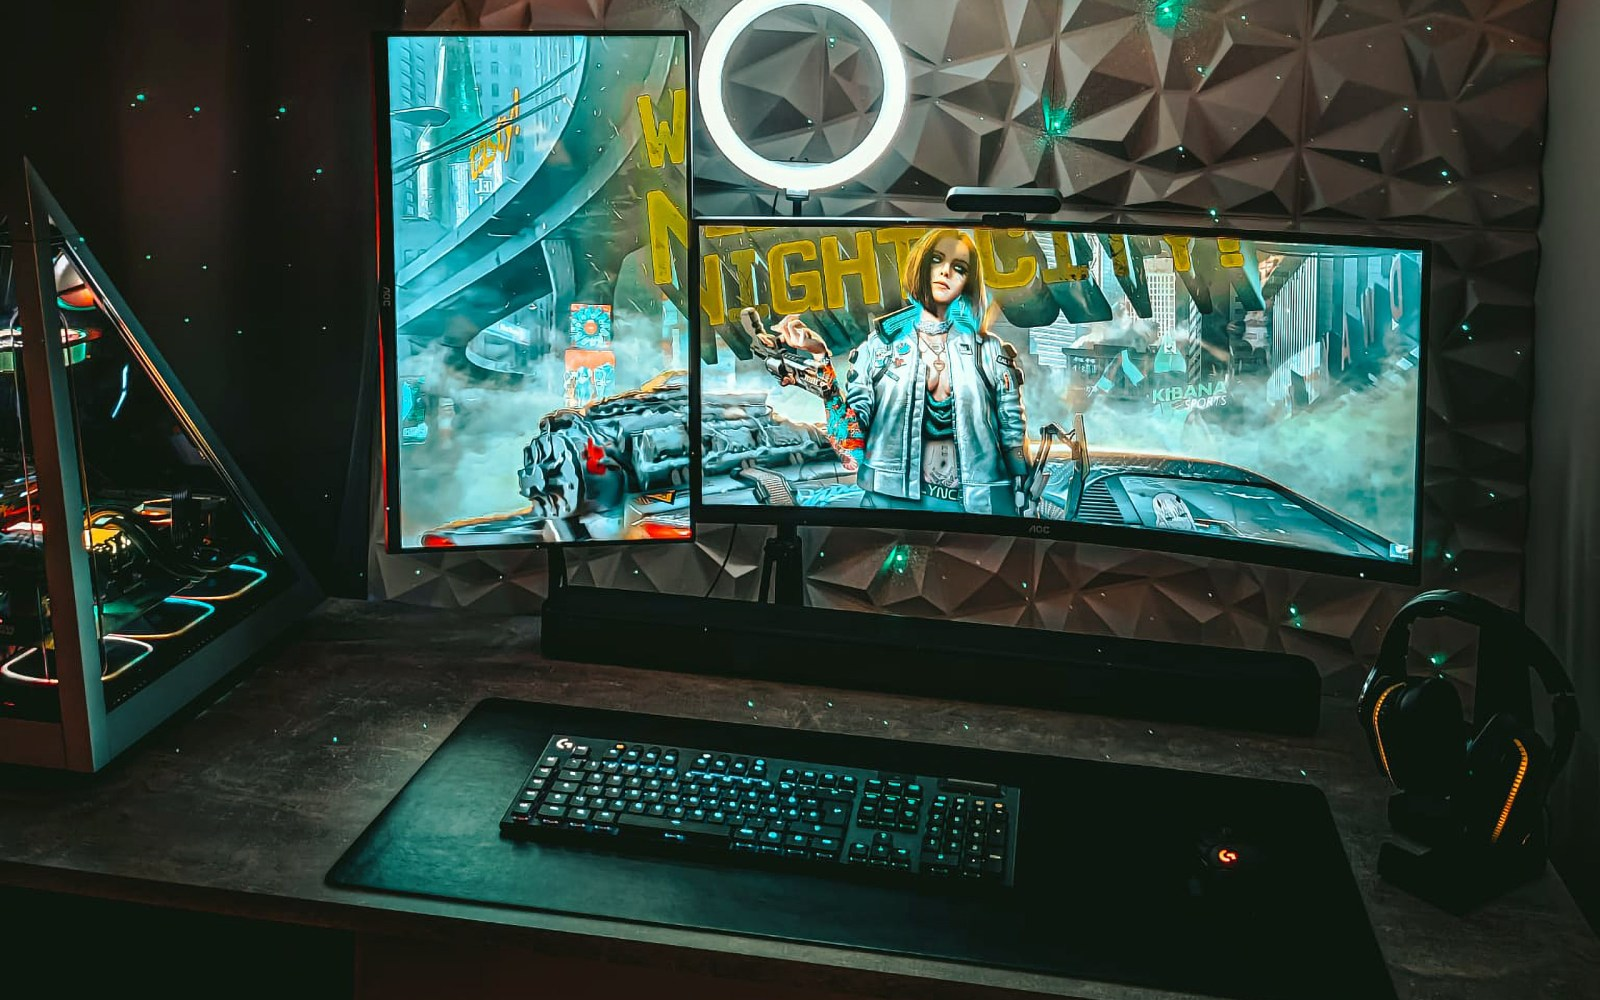 A pyramid of technology and maximum attention to detail in this fabulous pc desktop setup